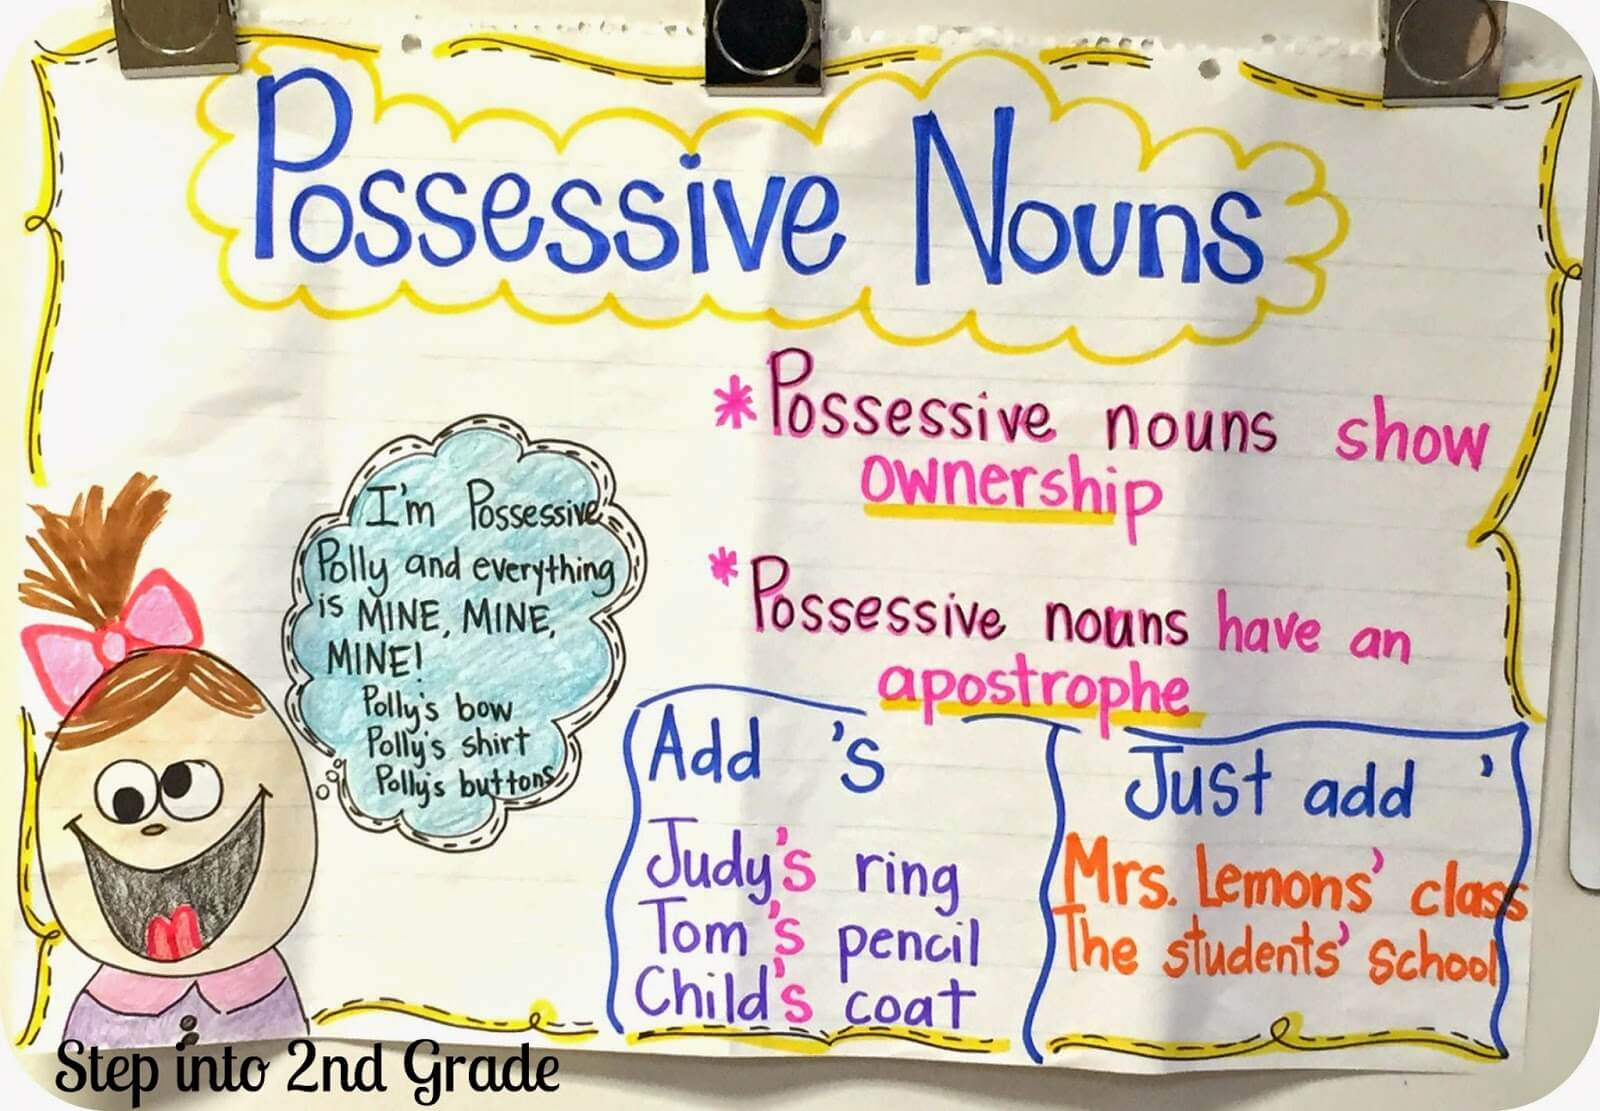 medium resolution of Possessive Nouns - Amy Lemons